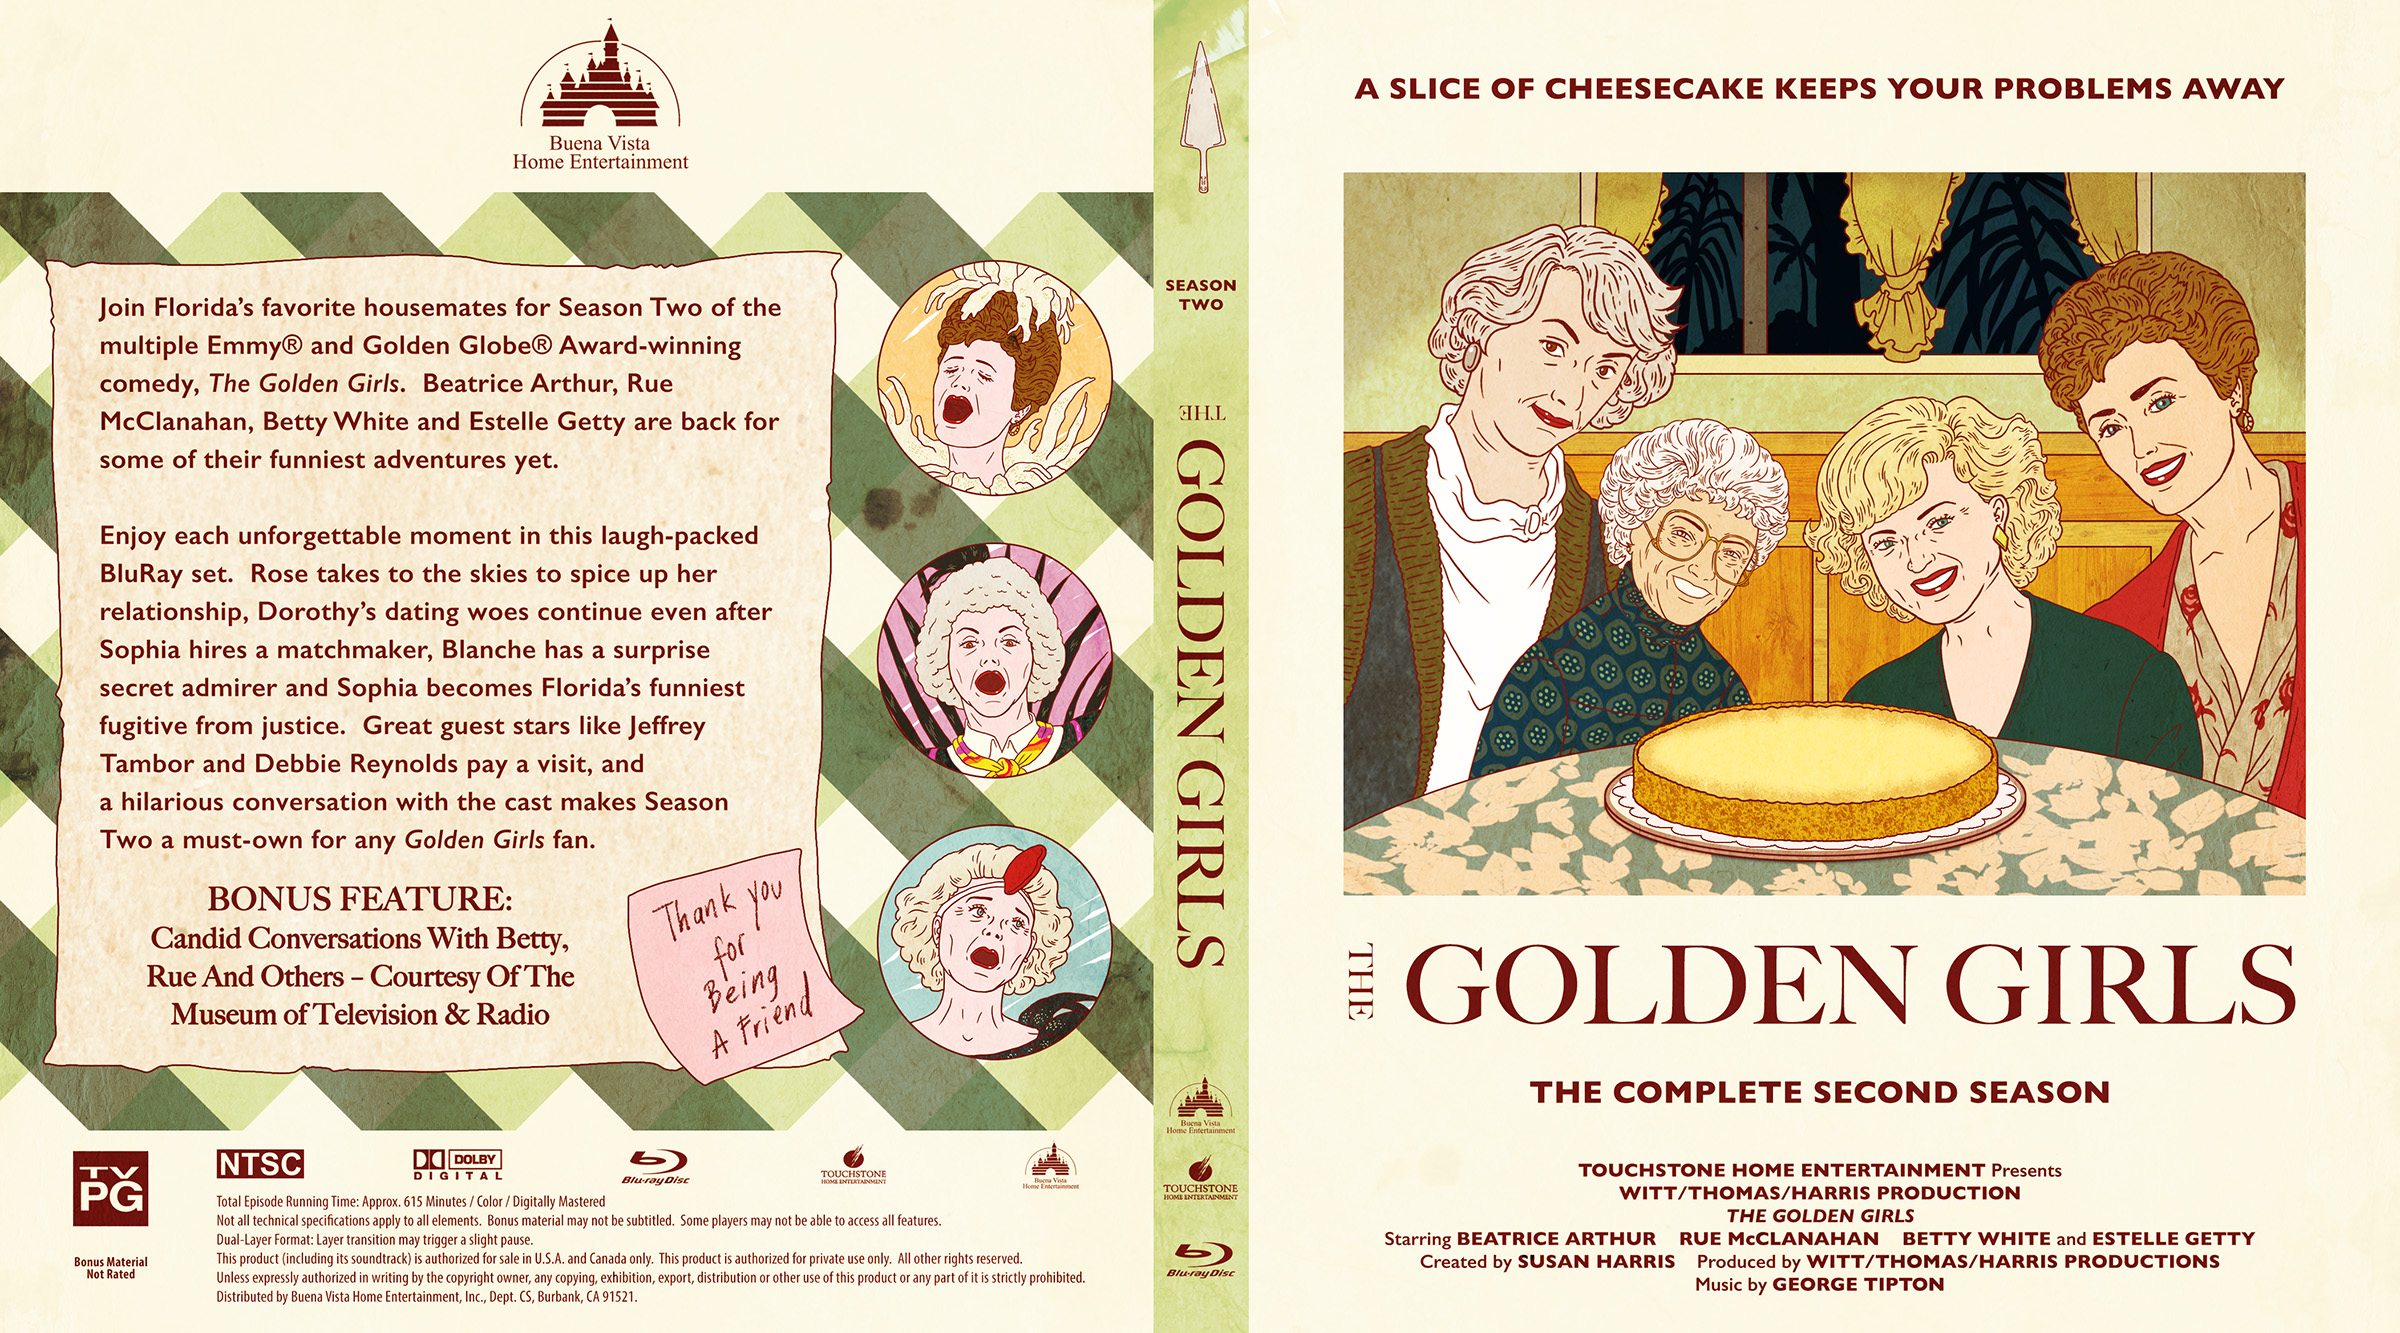 MINI-SYS.COM Shirley Susilo golden girls 2 bluray packaging disc label design file.jpg